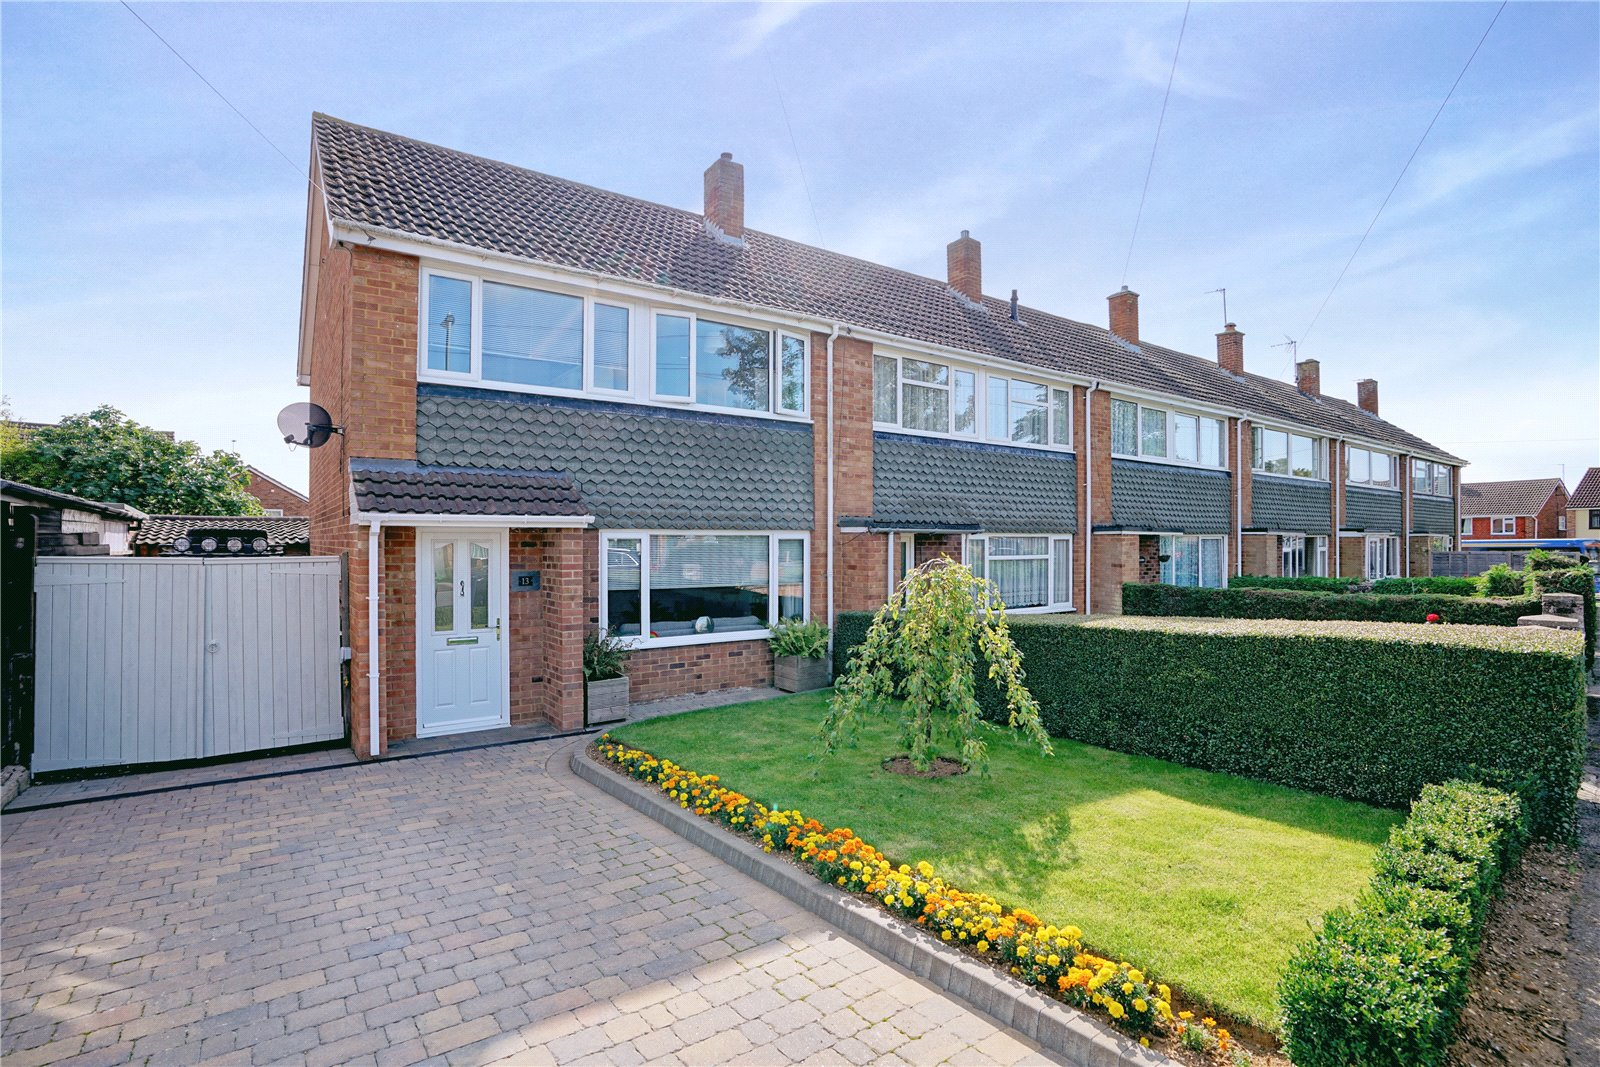 3 bed house for sale in St. Neots, Acacia Grove, PE19 1UA, PE19